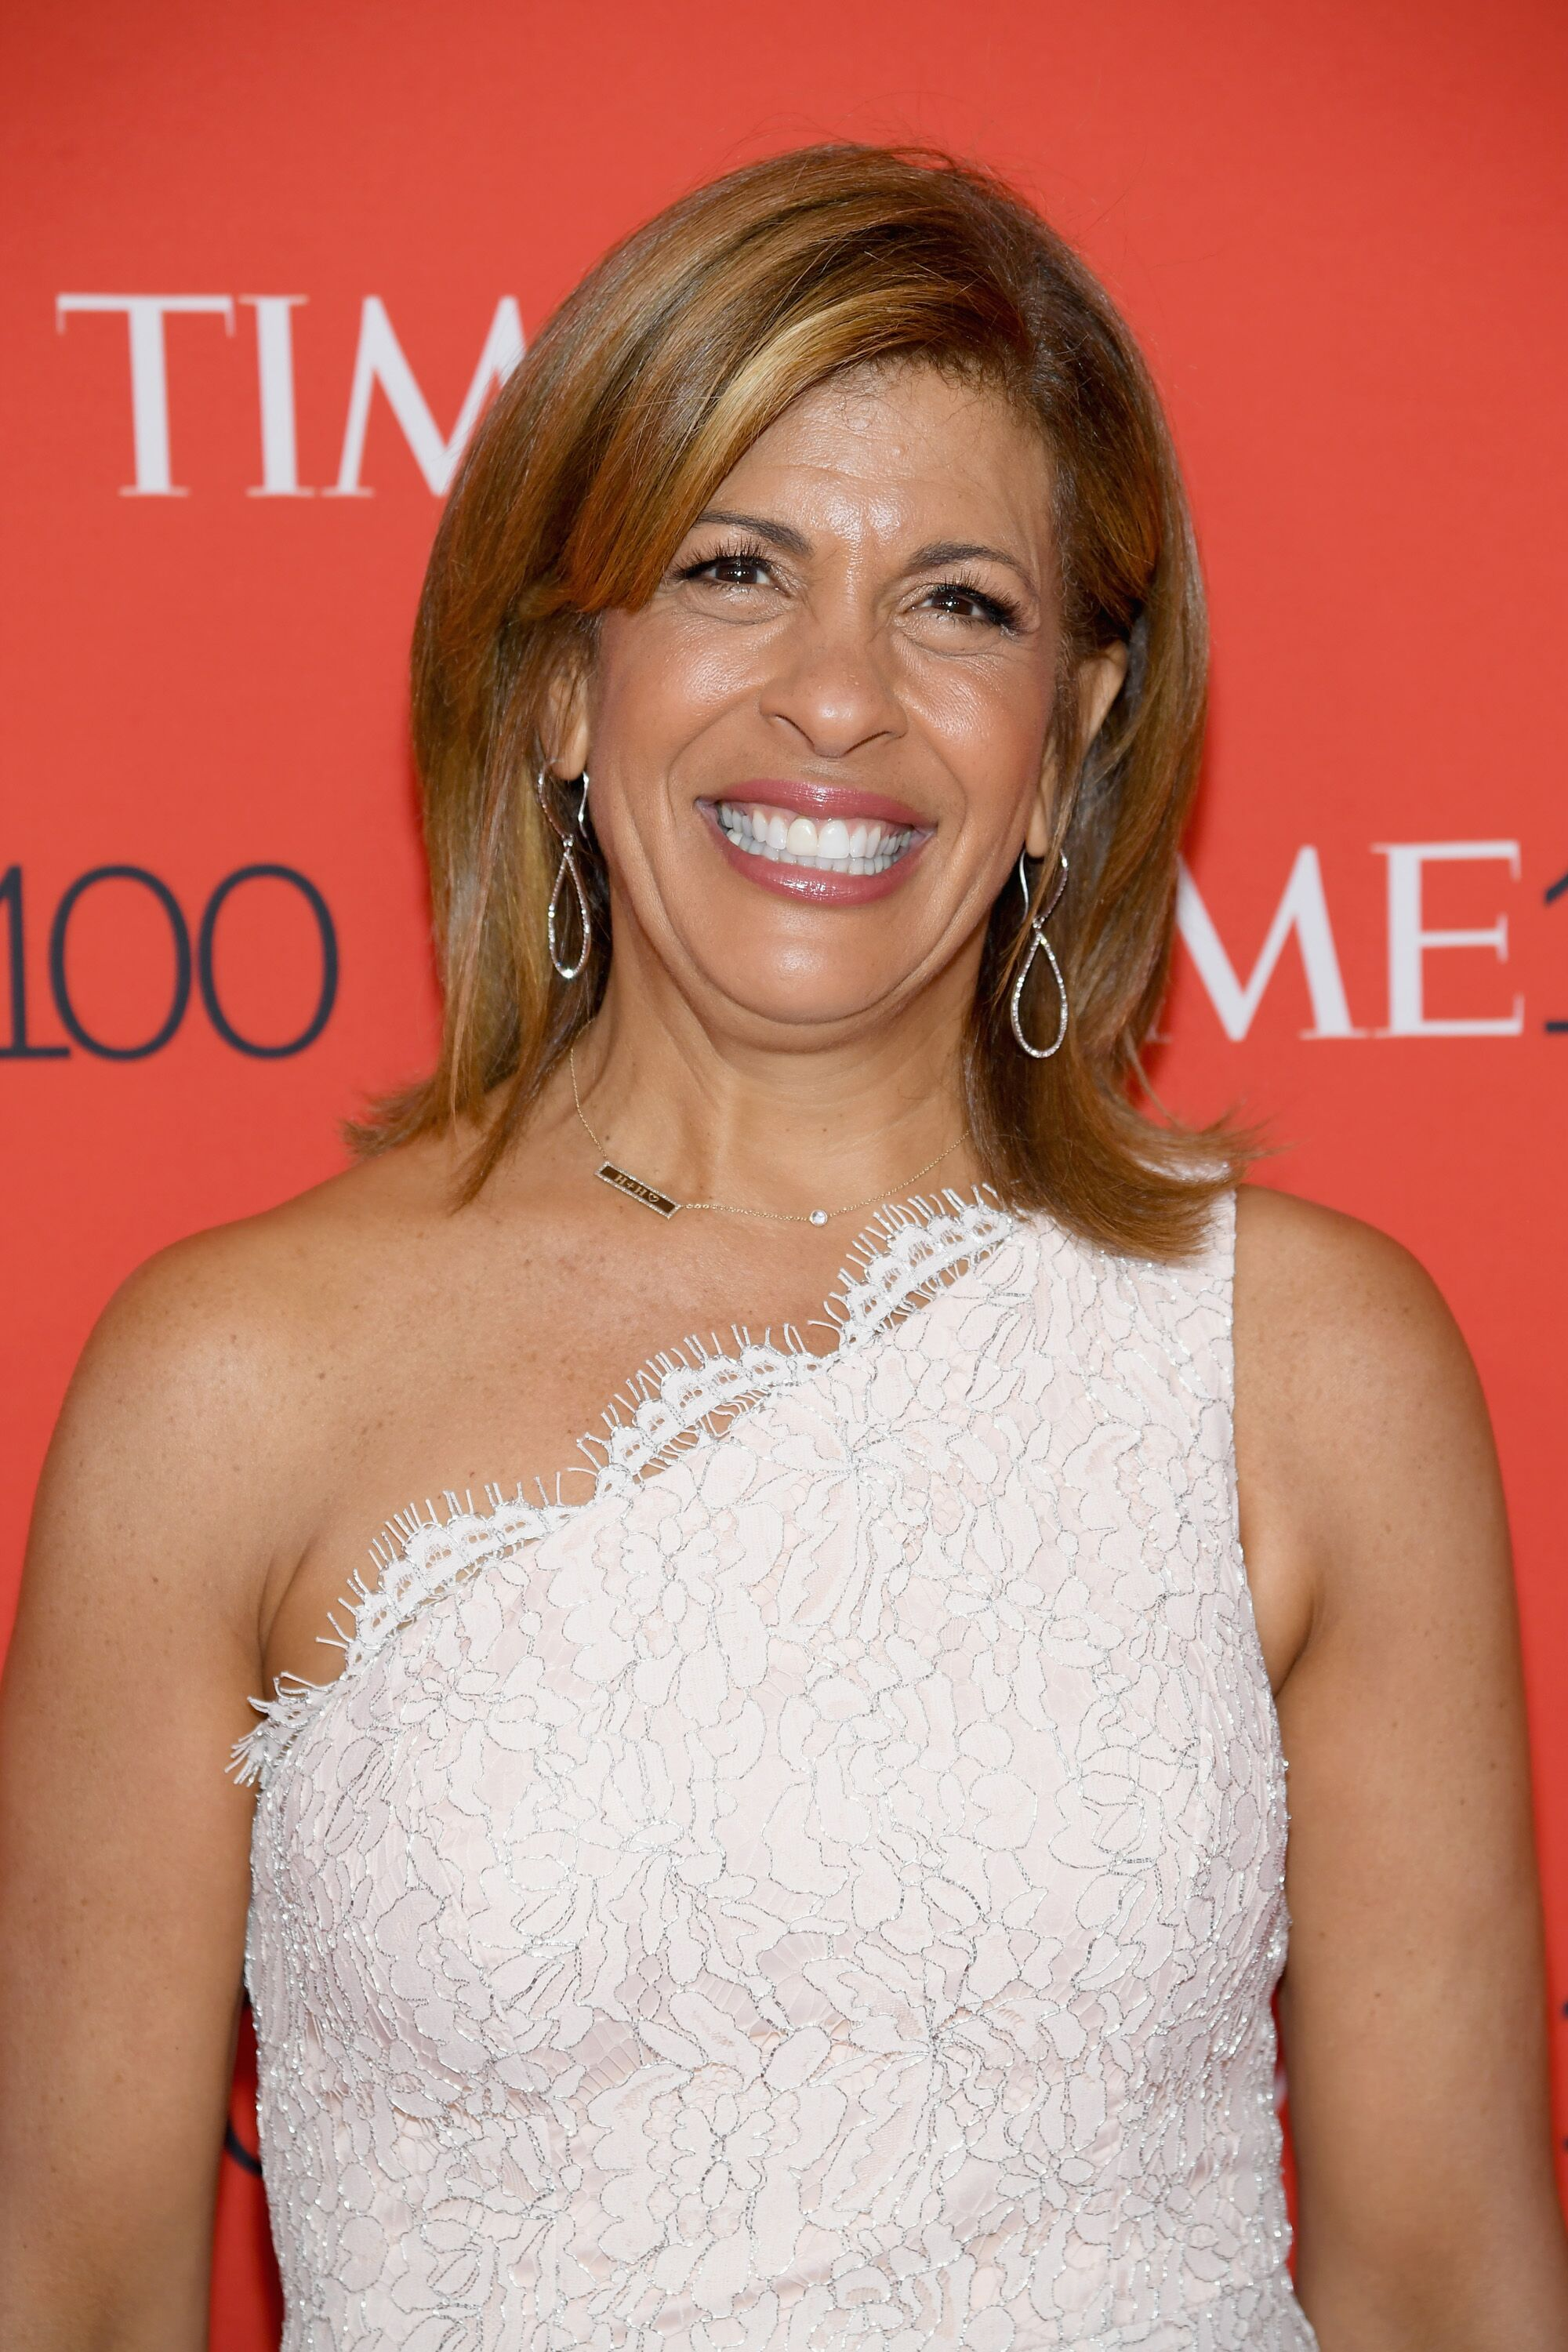 Hoda Kotb attends the 2018 Time 100 Gala at Jazz at Lincoln Center on April 24, 2018 in New York City. | Source: Getty Images